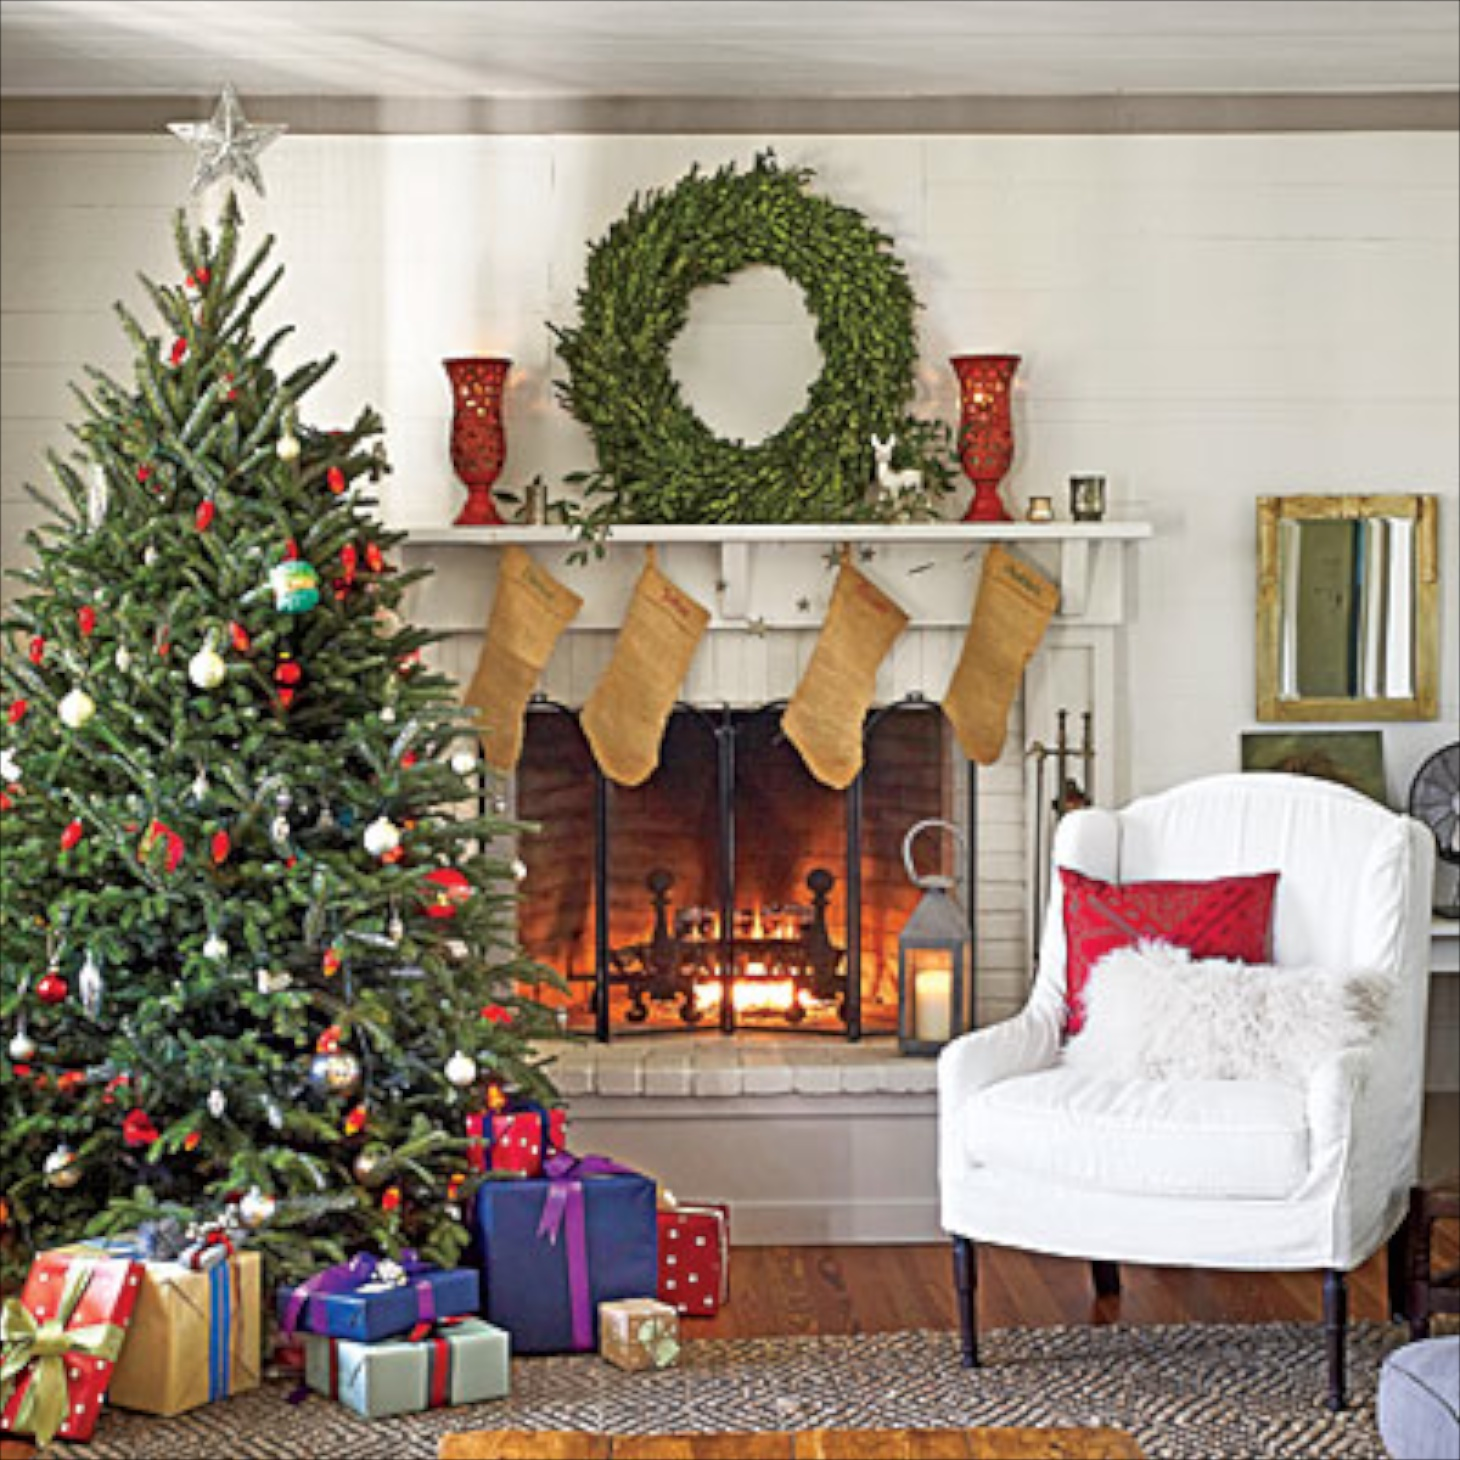 Tree Of Life Fireplace Surround: 2261001_Putnam_284